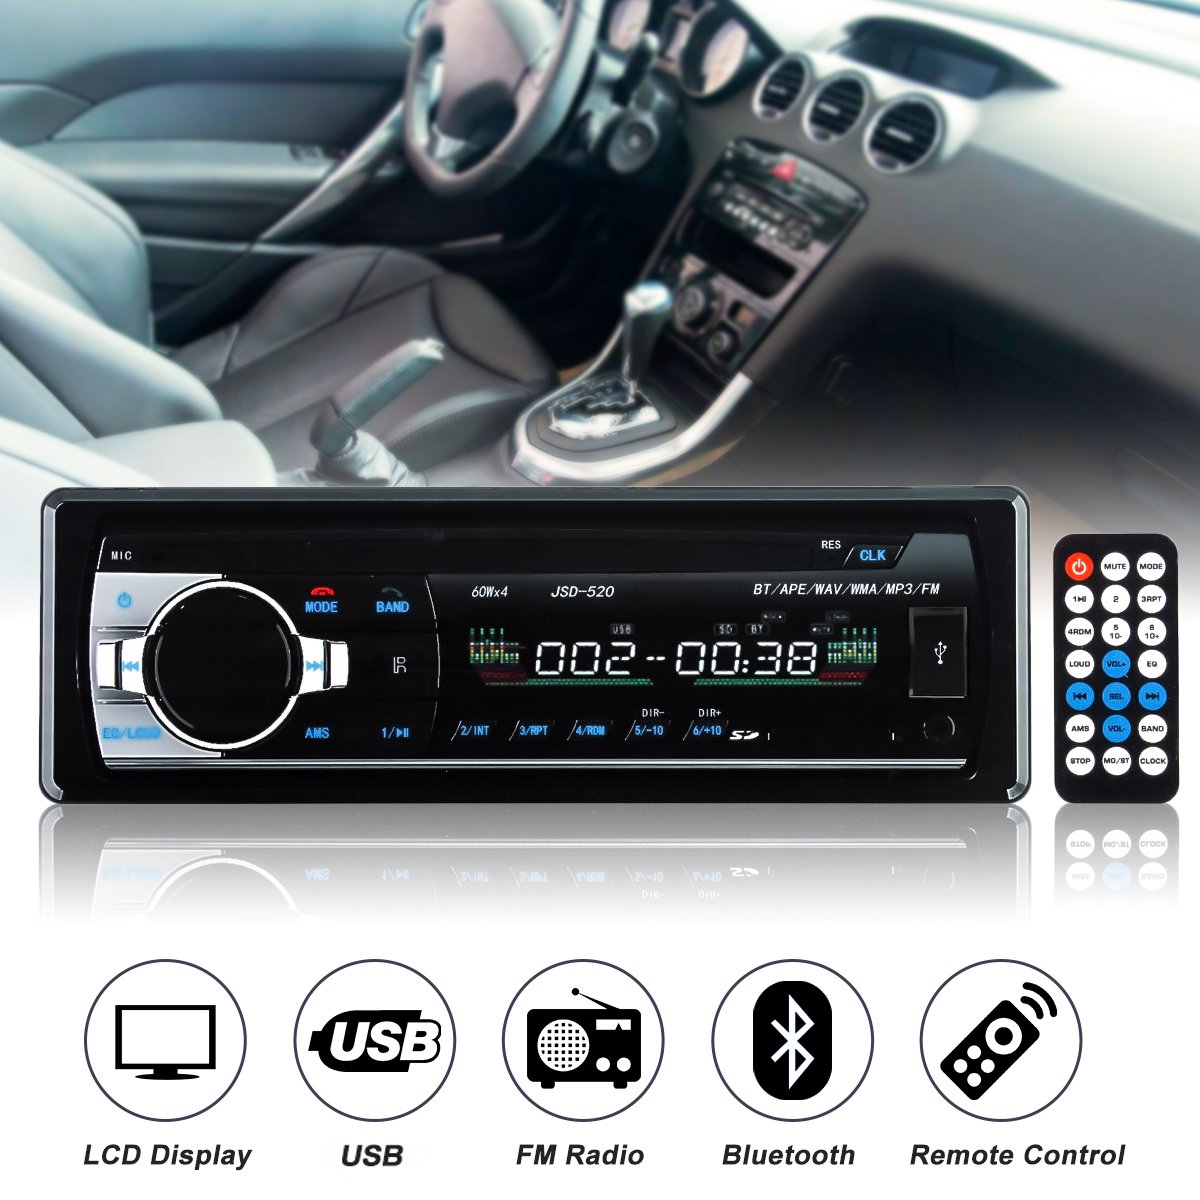 12V-24V 1 Din In Dash Car Radio bluetooth Auto Car Audio Stereo Player Support Phone AUX-IN MP3 FM USB Remote Control